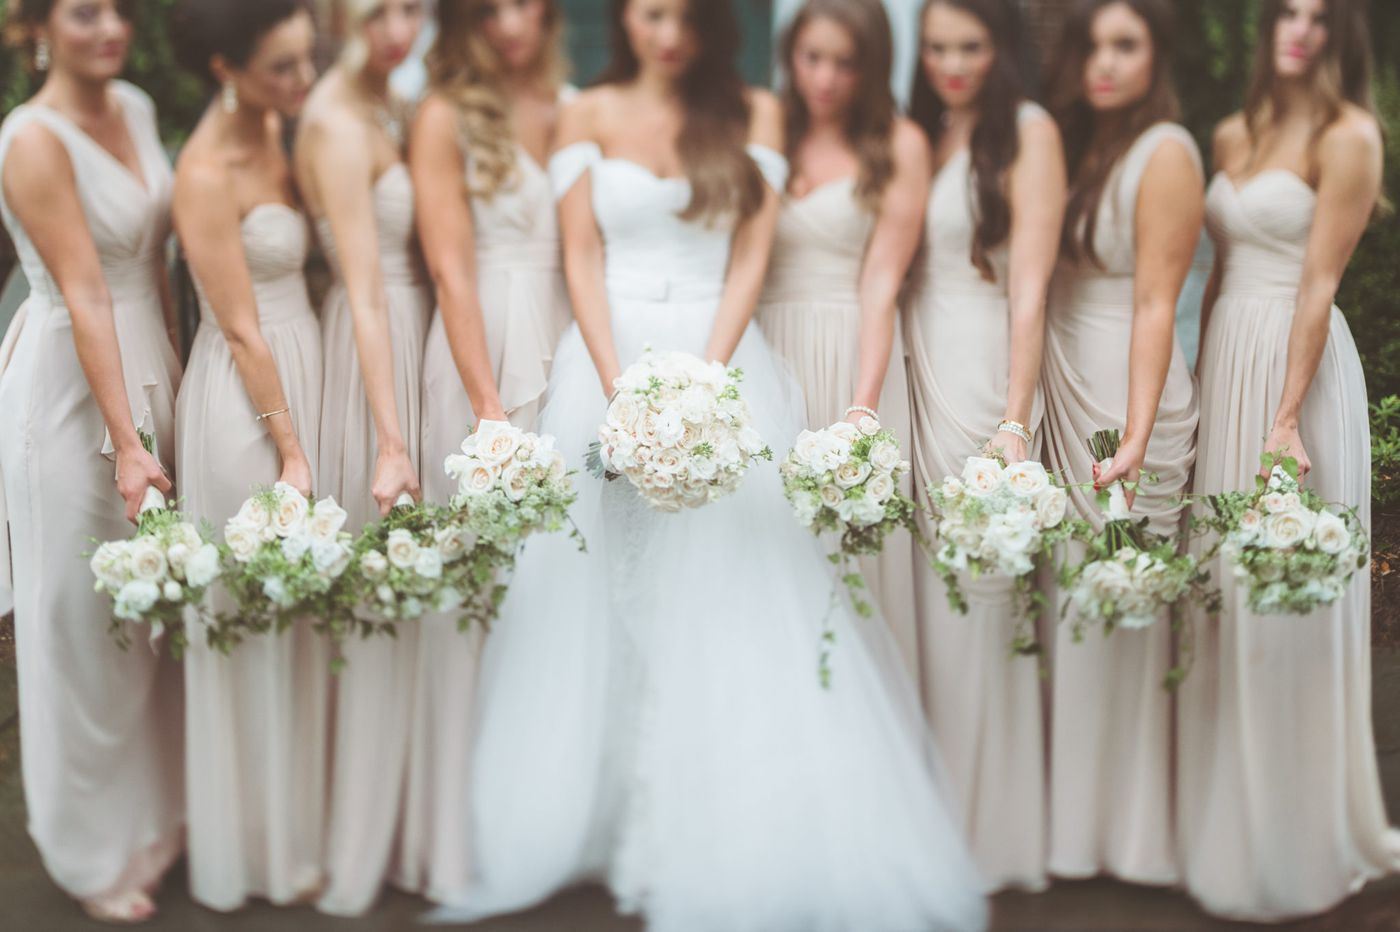 Award-Winning Philadelphia Wedding Planners | The Styled Bride